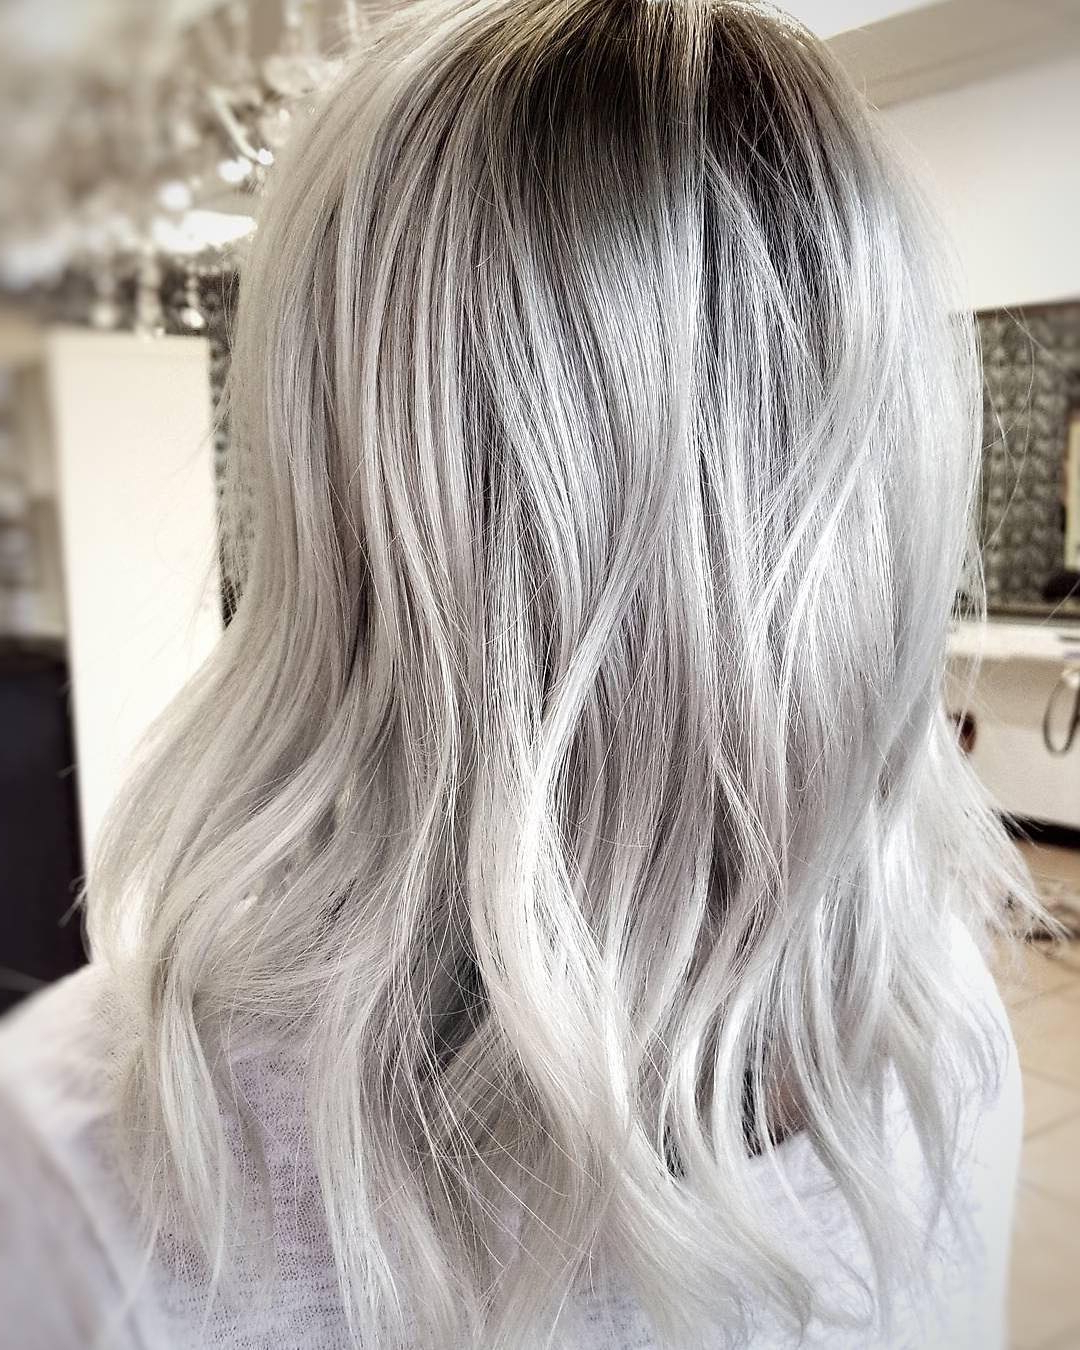 10 Gorgeous Ombre, Balayage Hairstyles For Long Hair, Hairstyles 2019 Pertaining To 2019 Layered Ombre For Long Hairstyles (View 3 of 20)